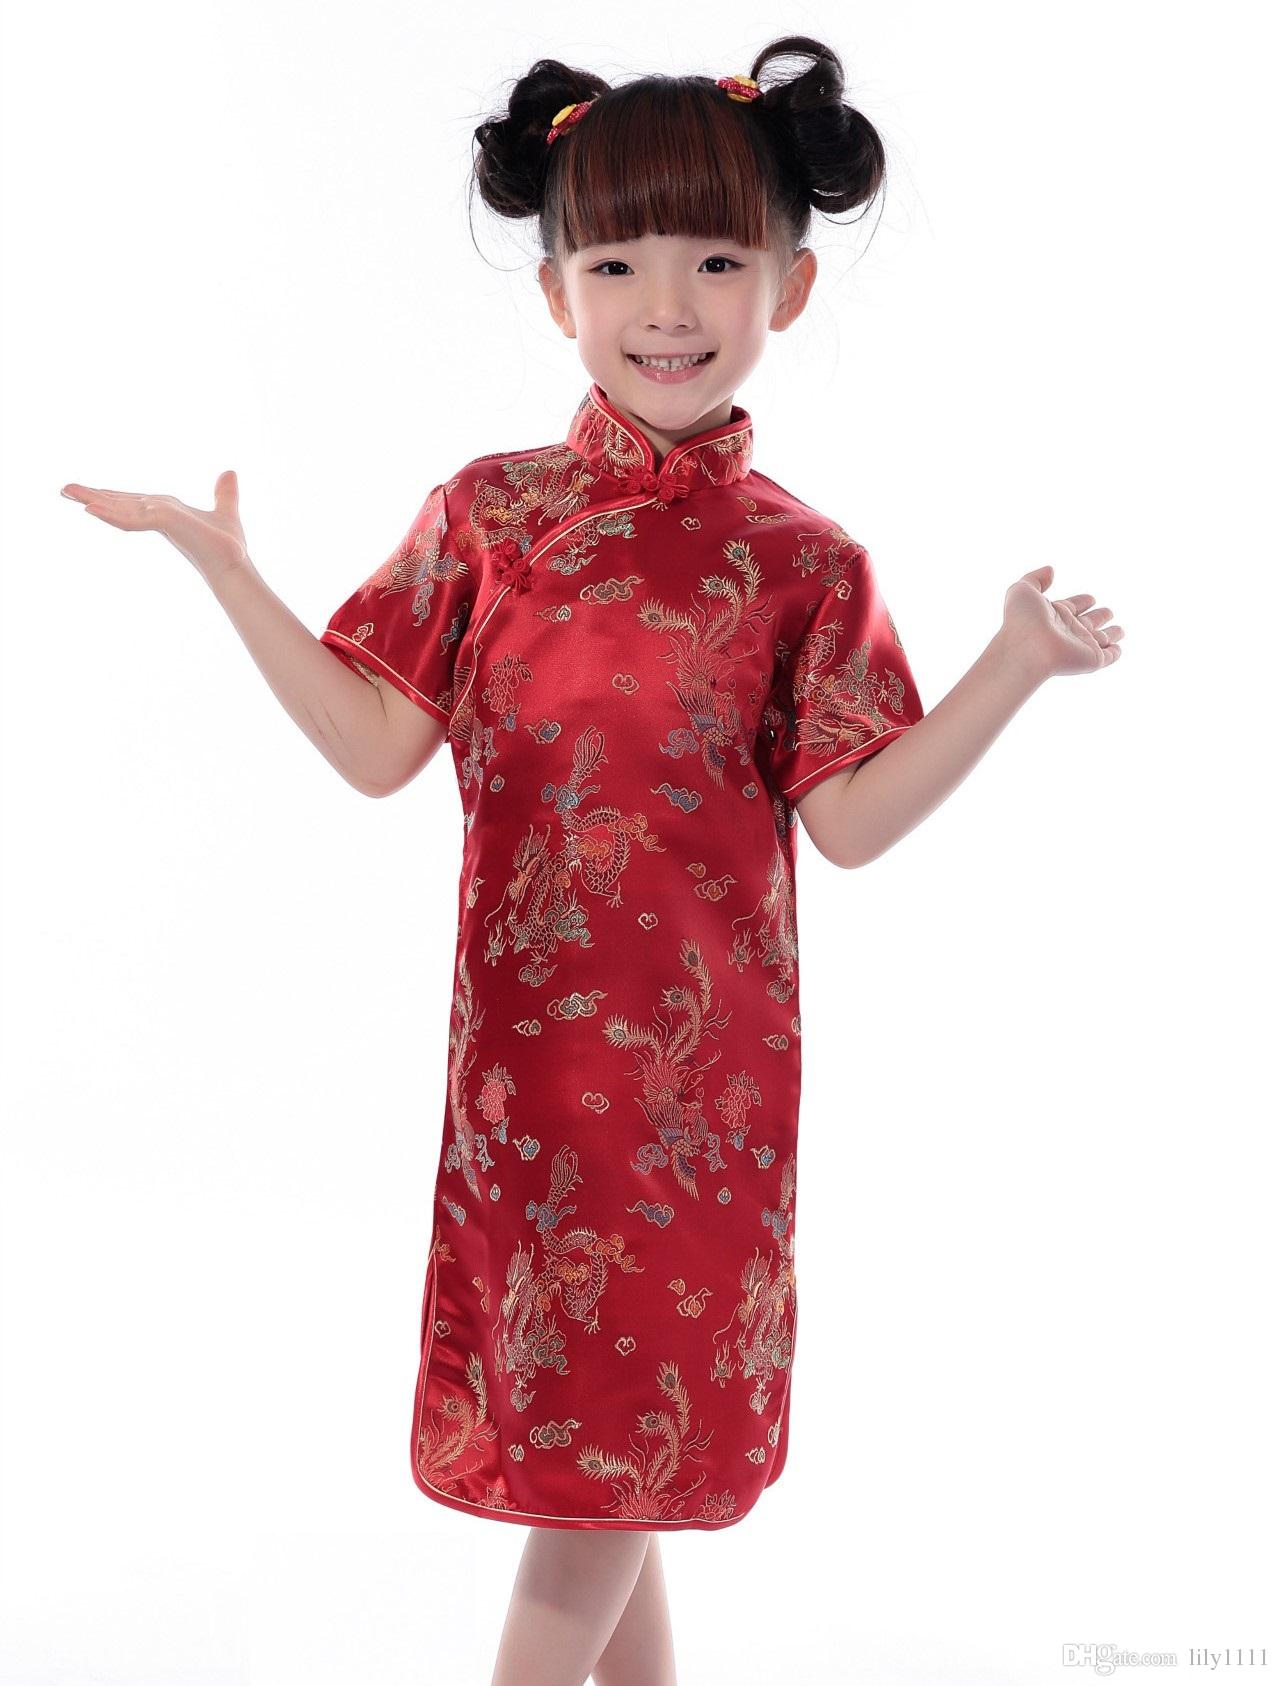 deeb0103a 2019 Shanghai Story Baby Girls Chinese Style QiPao Dress Brand Dragon &  Phoenix Cheongsam For Girls Kids Performance Costume From Lily1111, $18.1 |  DHgate.